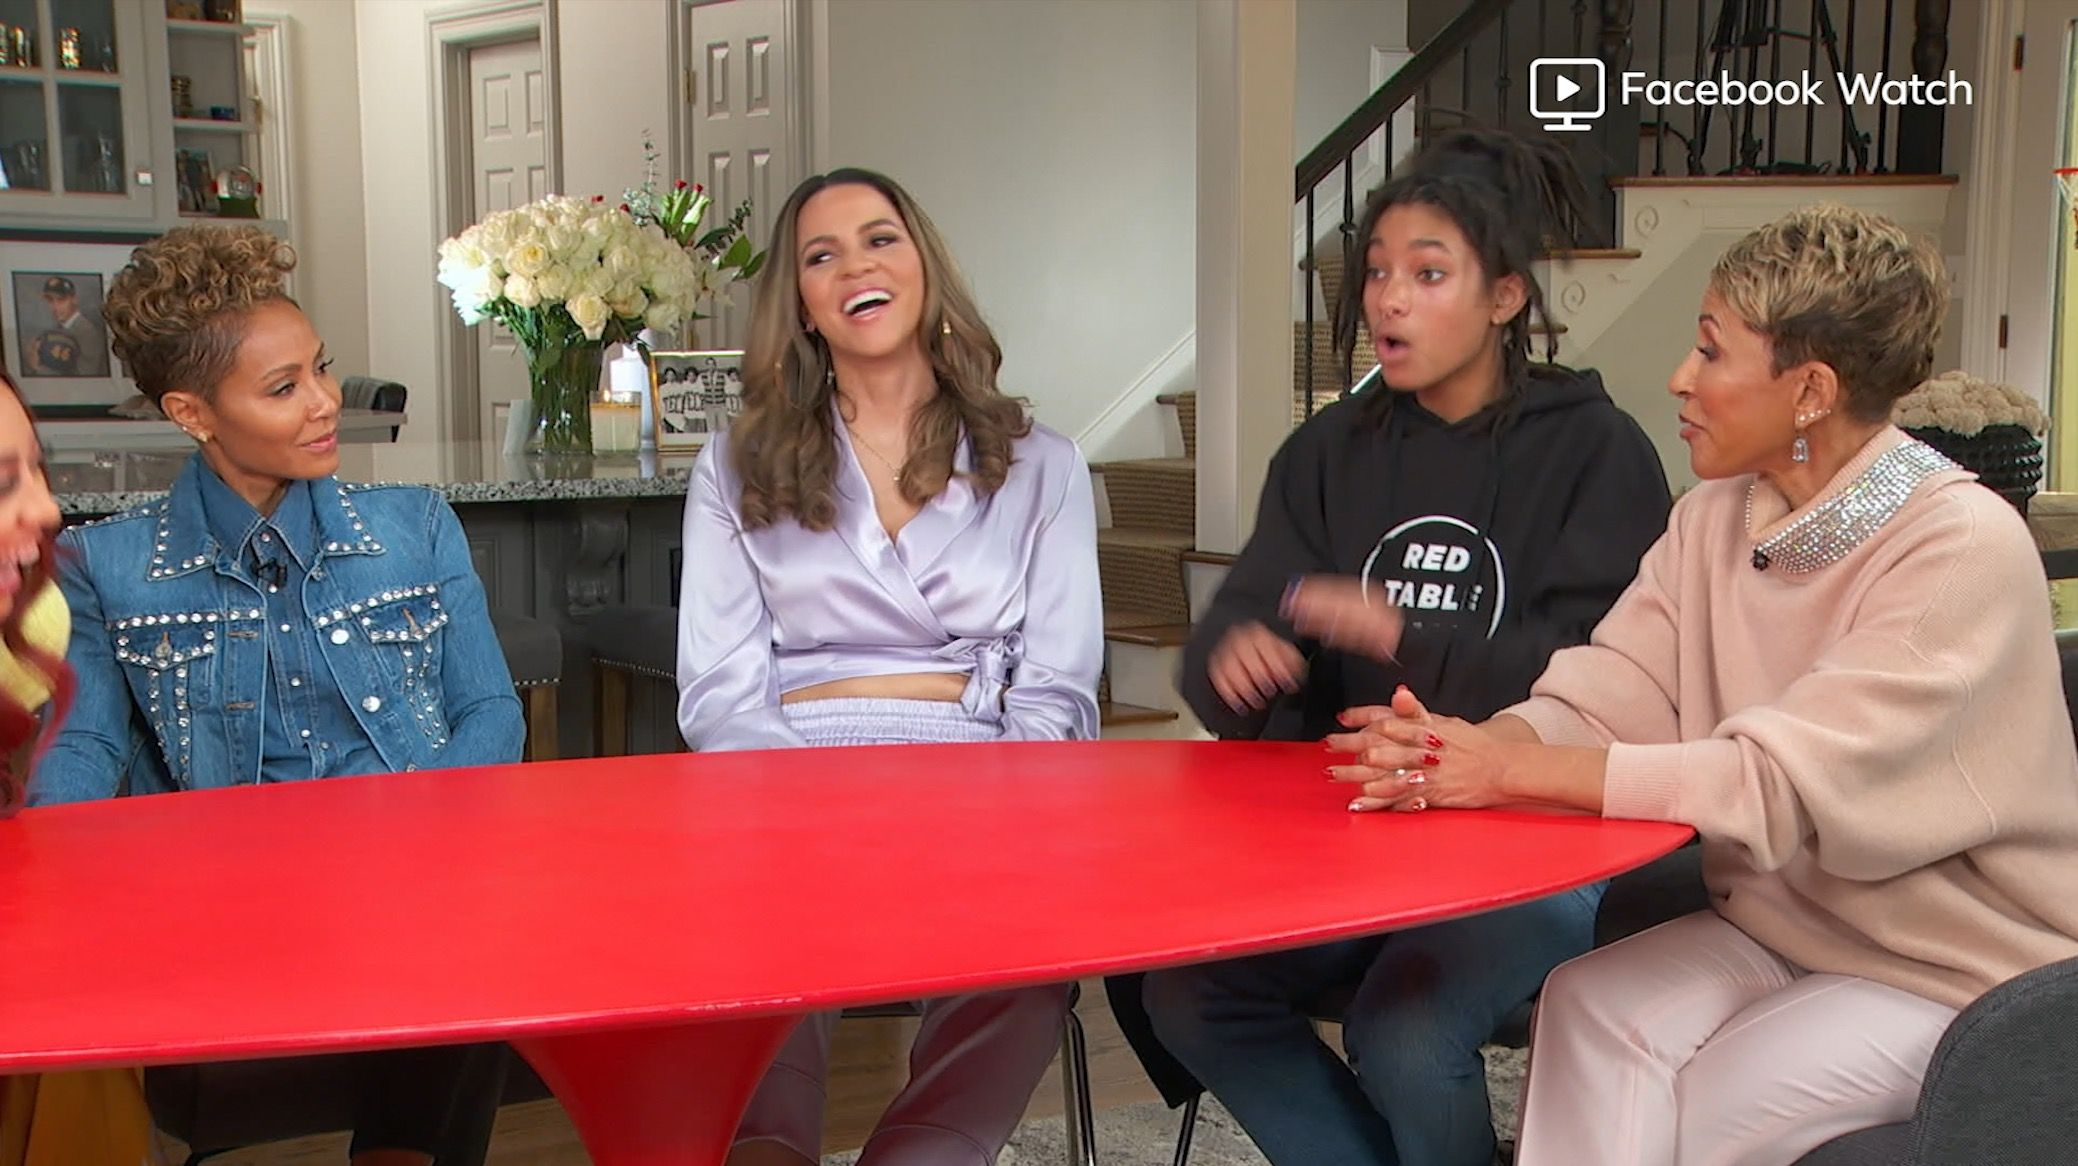 """Jada Pinkett Smith on Meghan Markle for Red Table Talk: """"It's not the right time for her to tell her story"""""""